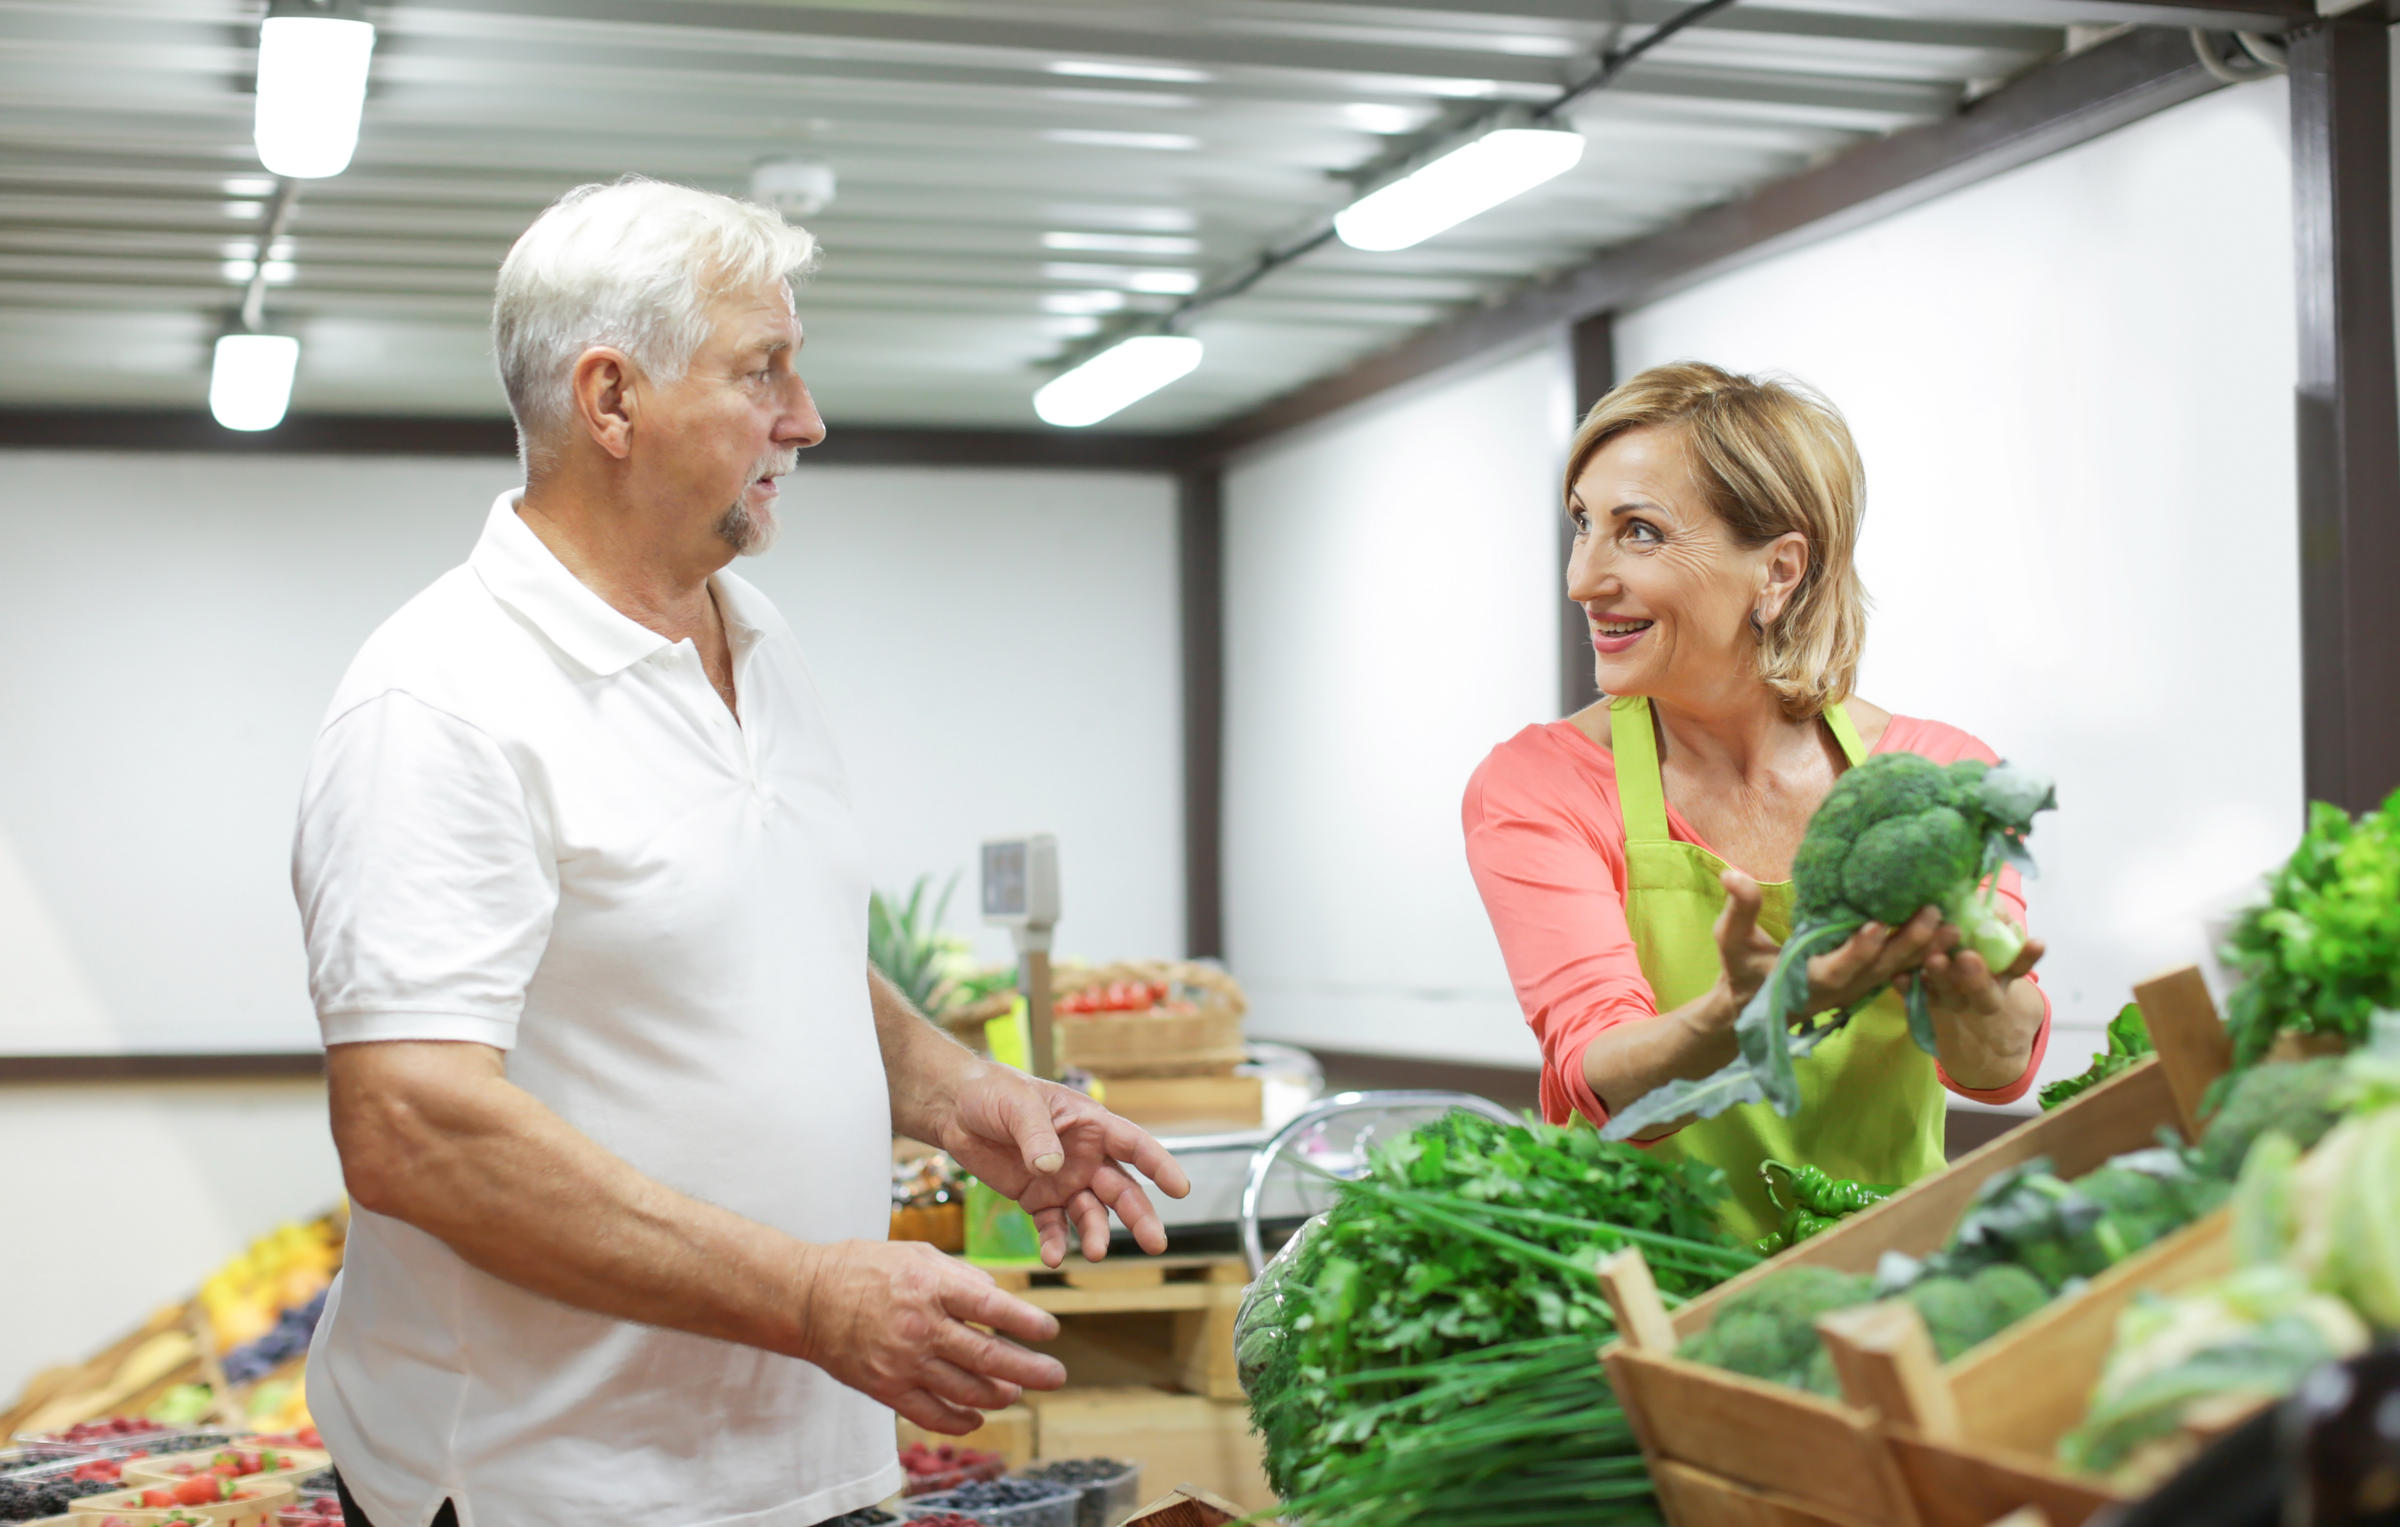 Eating leafy greens may stave off memory loss